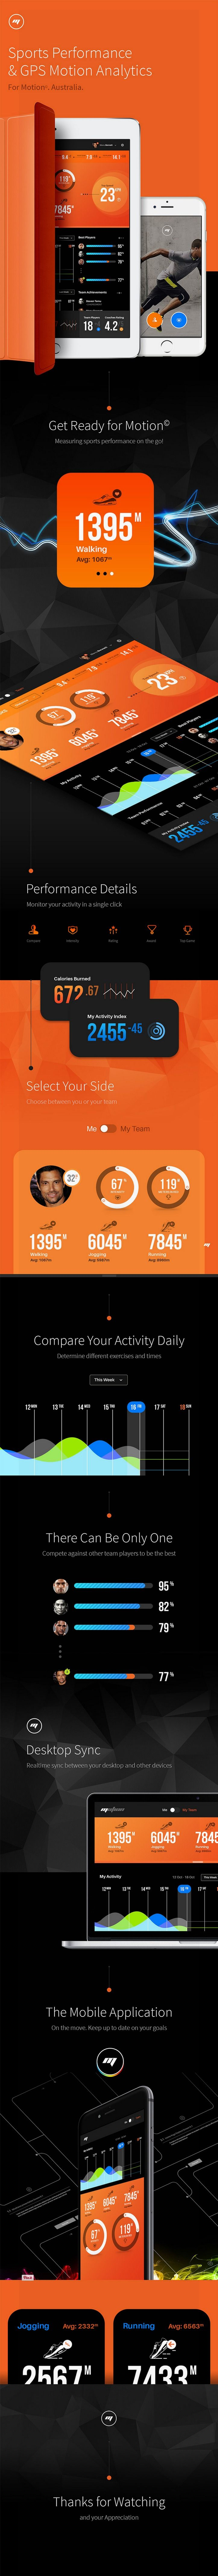 Dashboard - Motion - Sports Performance - Motion analytics